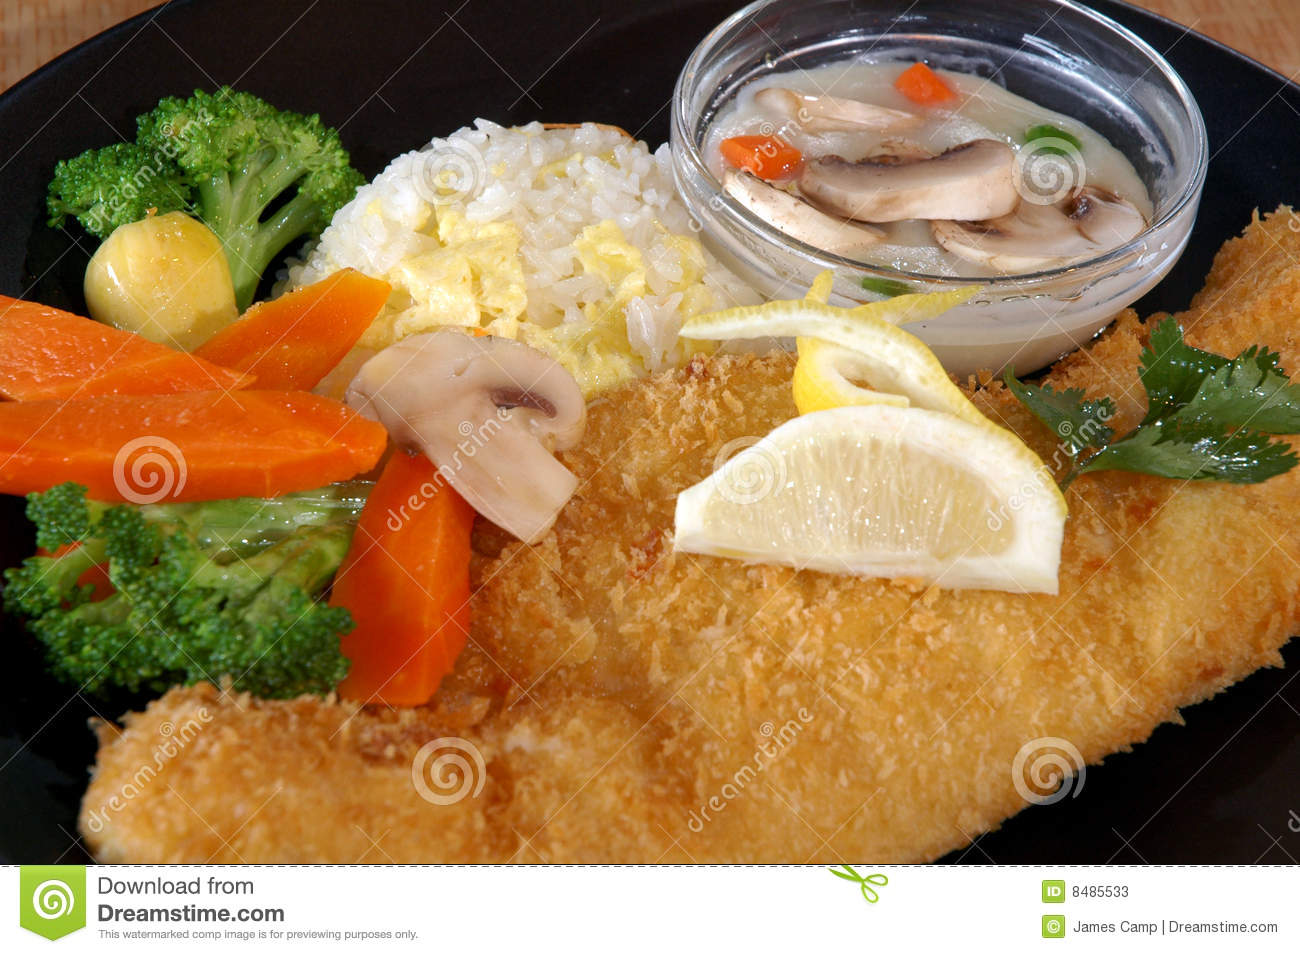 Fried fish with vegetables stock photos image 8485533 for Fish with vegetables